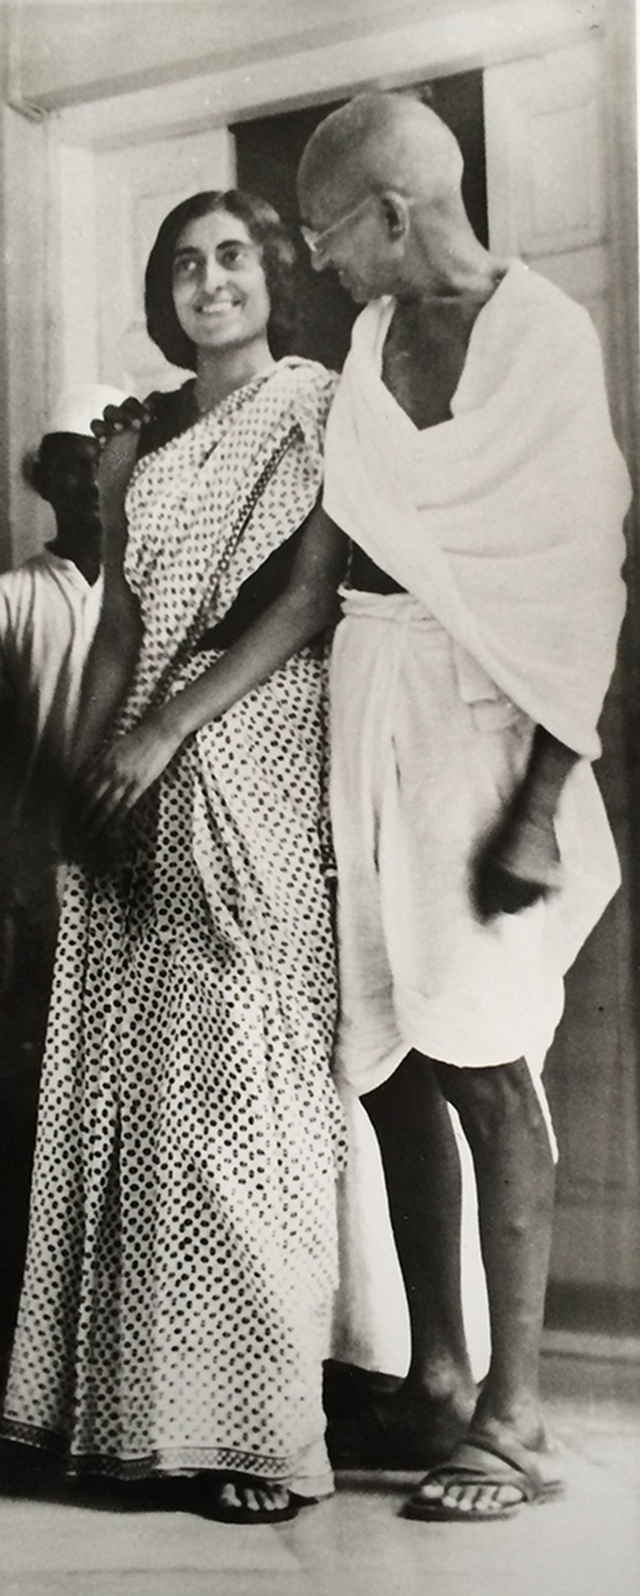 1935: Indira with Mahatma Gandhi in New Delhi during one of his visits to her family residence. 'Indu', as she was fondly known, was greatly influenced by Bapu from a very early age.